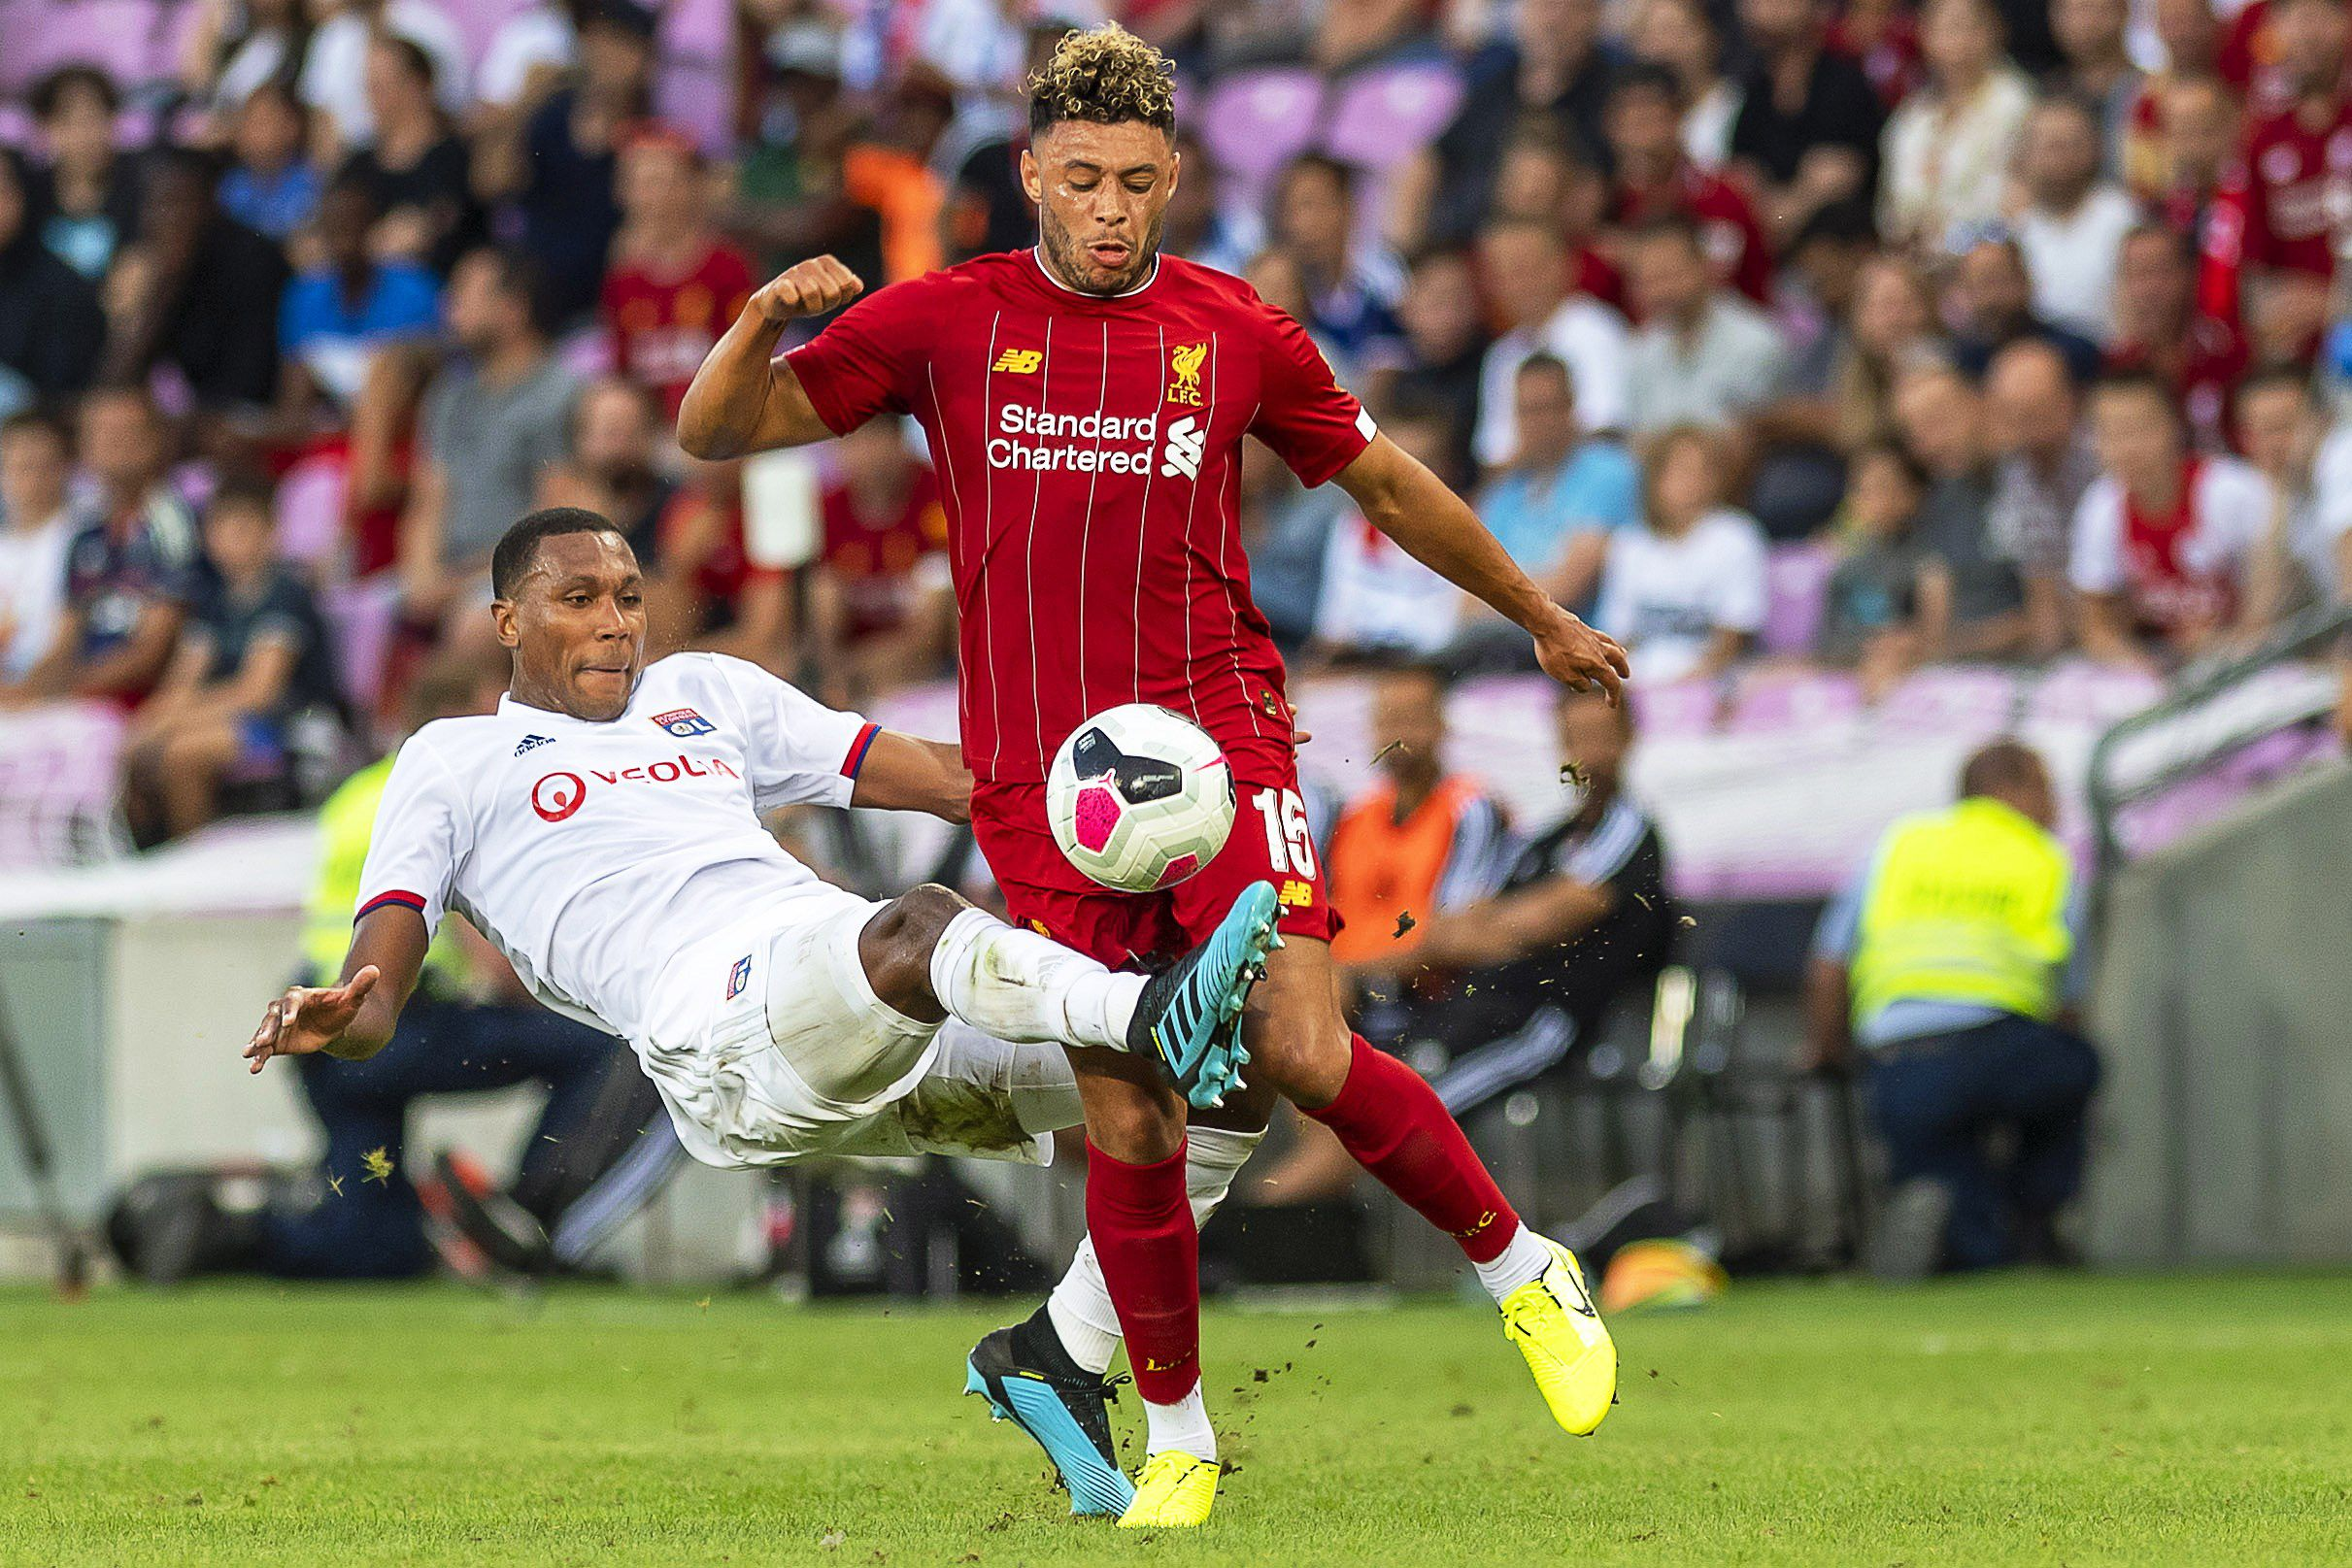 Geneva (Switzerland), 31/07/2019.- Liverpool's Alex Oxlade-Chamberlain (R) in action against Lyon's Marcelo Guedes (L) during a friendly soccer match between Liverpool FC and Olympique Lyon in Geneva, Switzerland, 31 July 2019. (Futbol, Amistoso, Suiza, Ginebra) EFE/EPA/MARTIAL TREZZINI